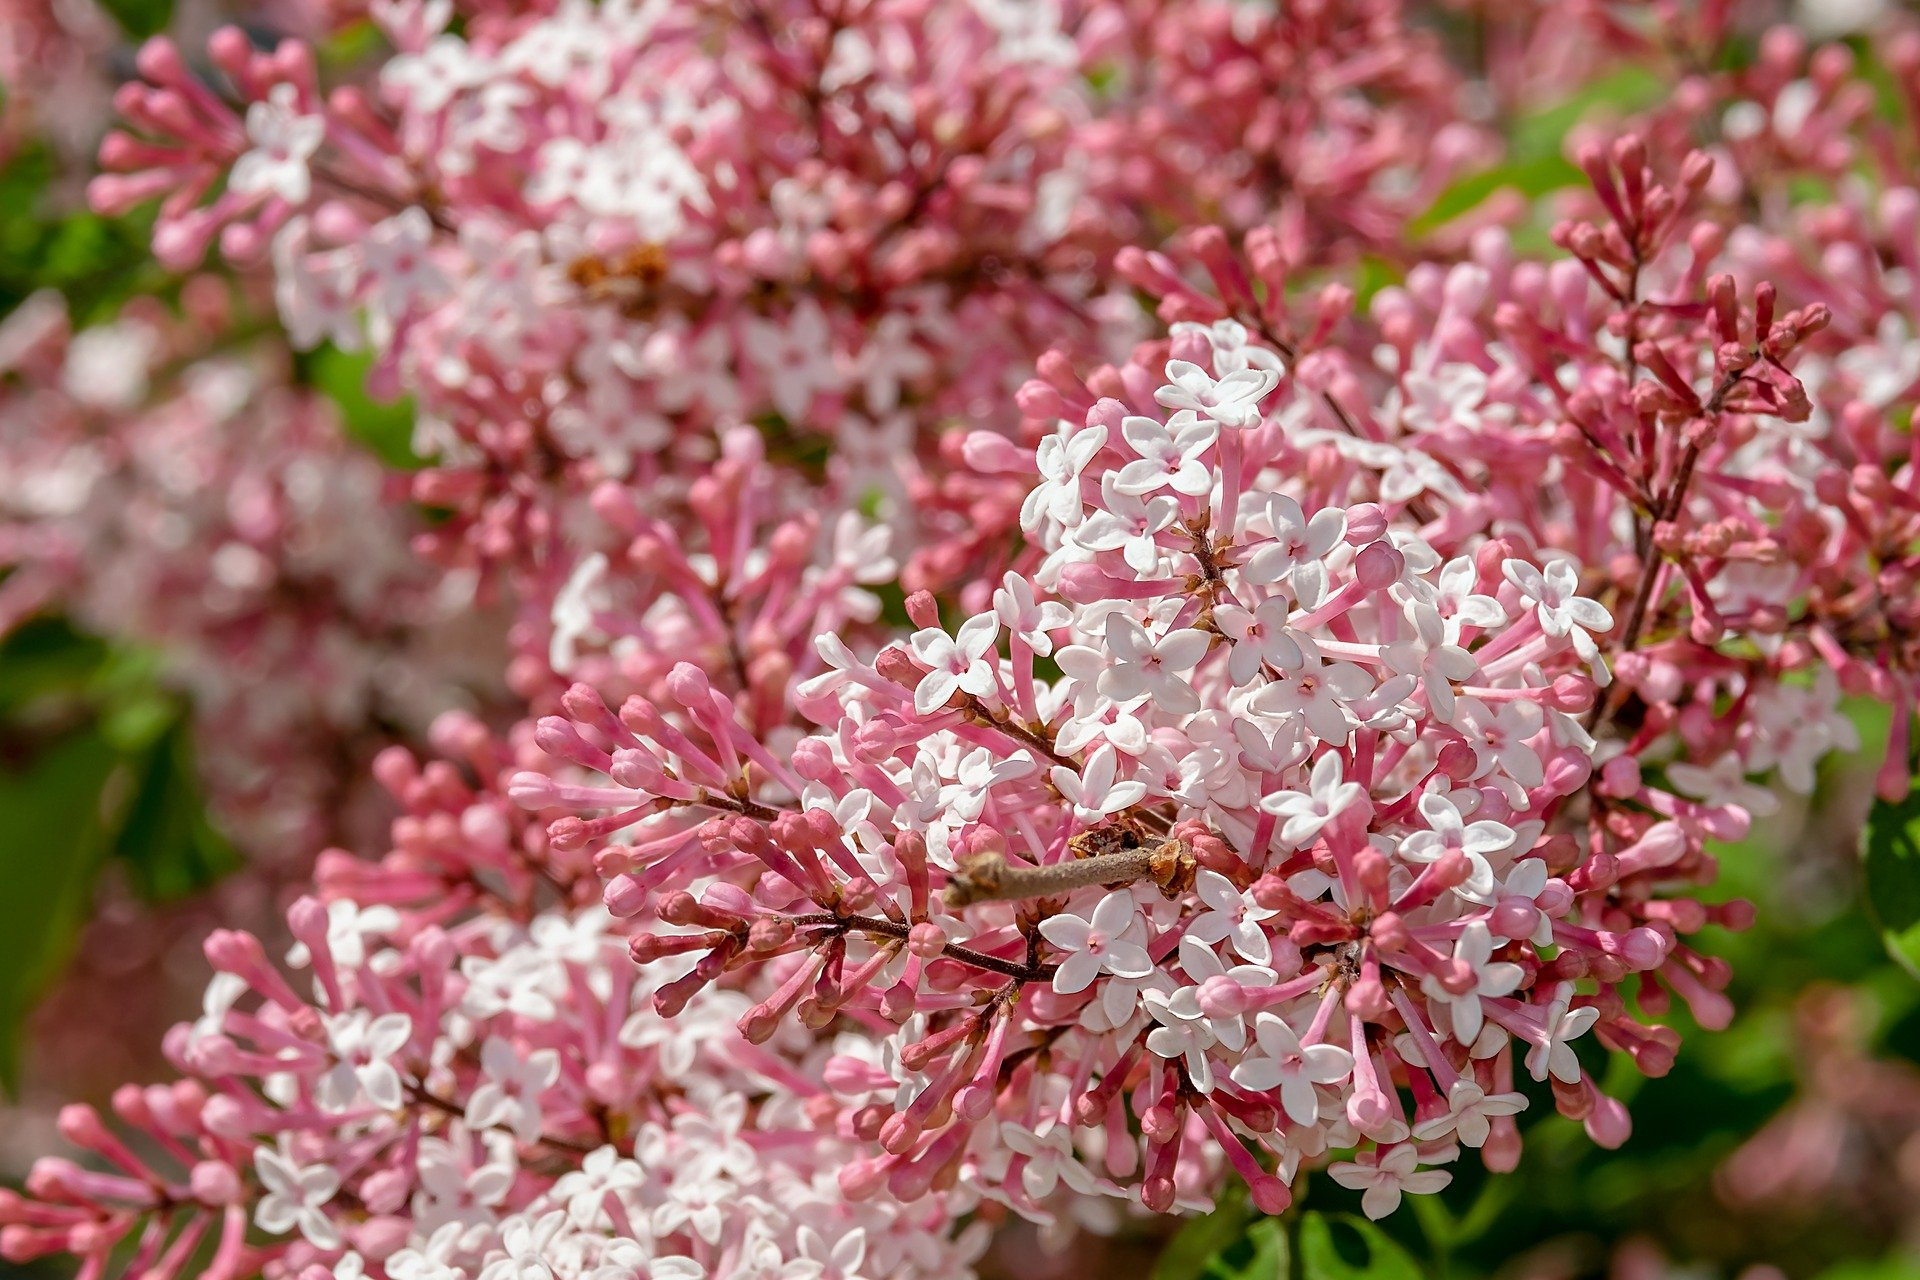 A field of pink and white lilac flowers | Photo: Pixabay/Couleur